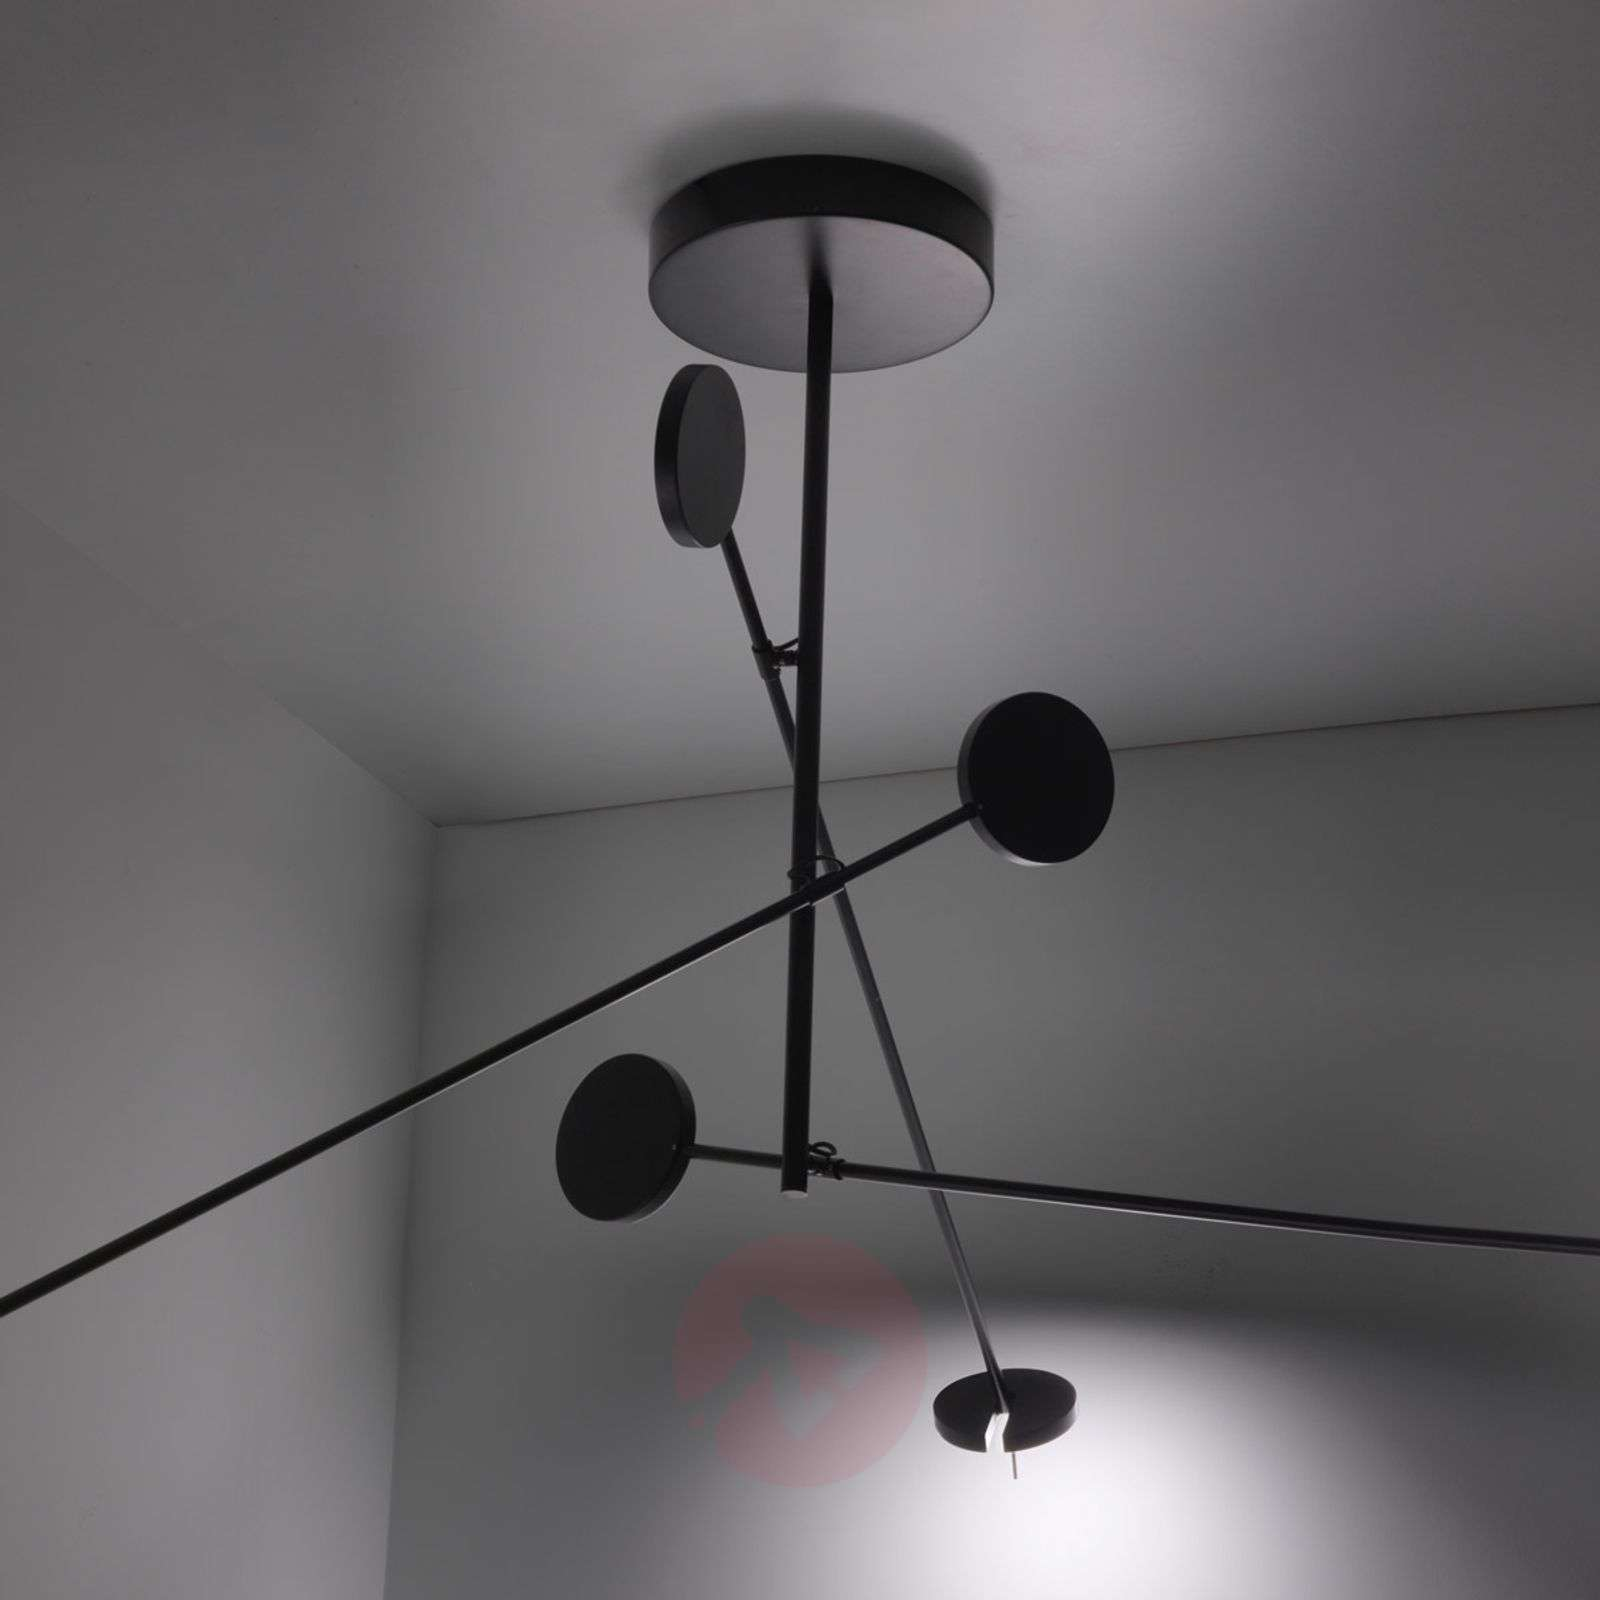 Variabele LED-hanglamp Invisible-6026522-01